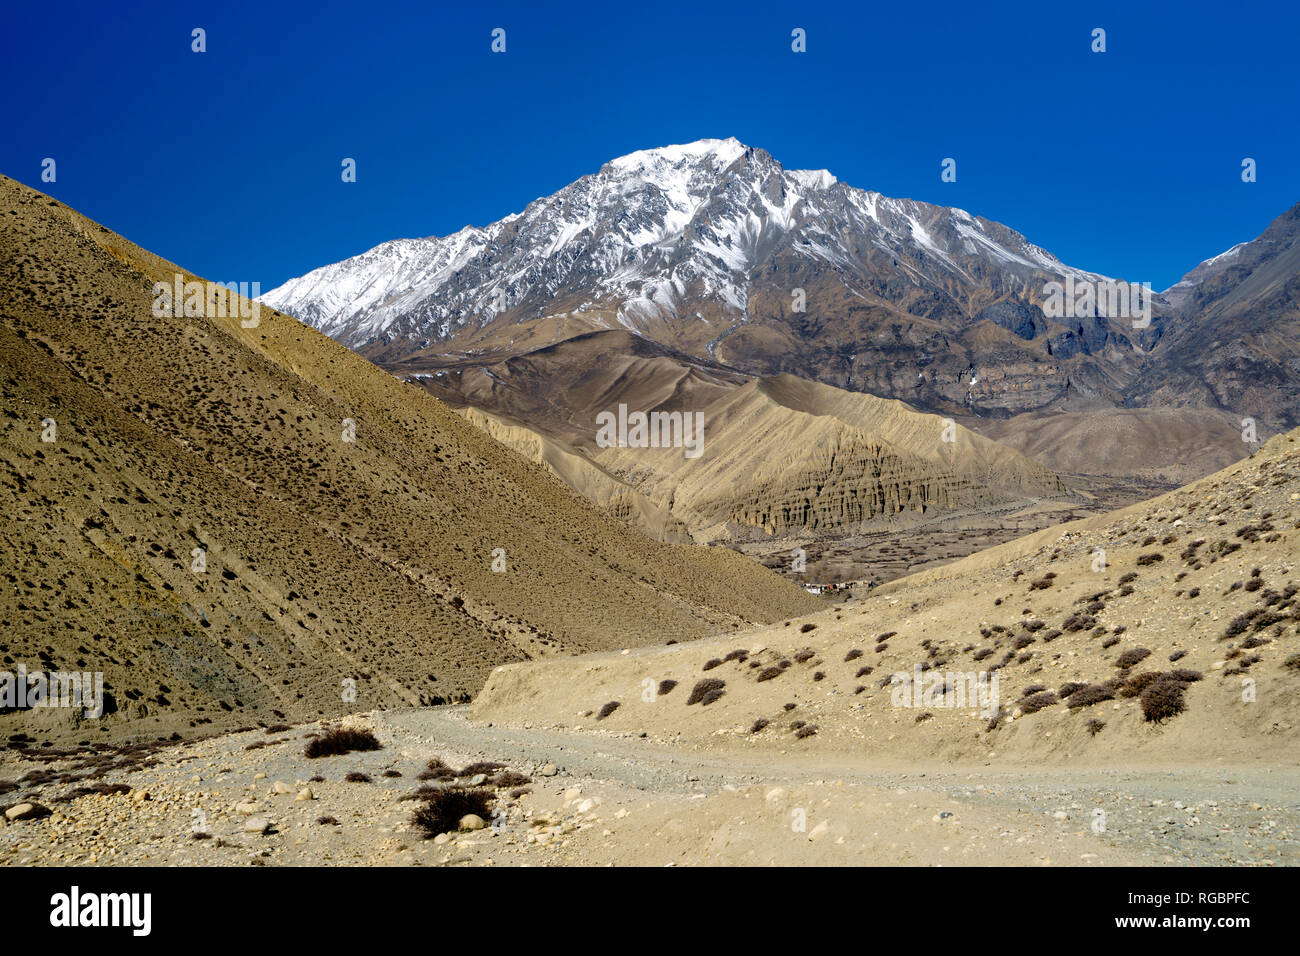 Dirt track leading to the village of Ghemi, partly visible in the distance. Upper Mustang region, Nepal. Stock Photo